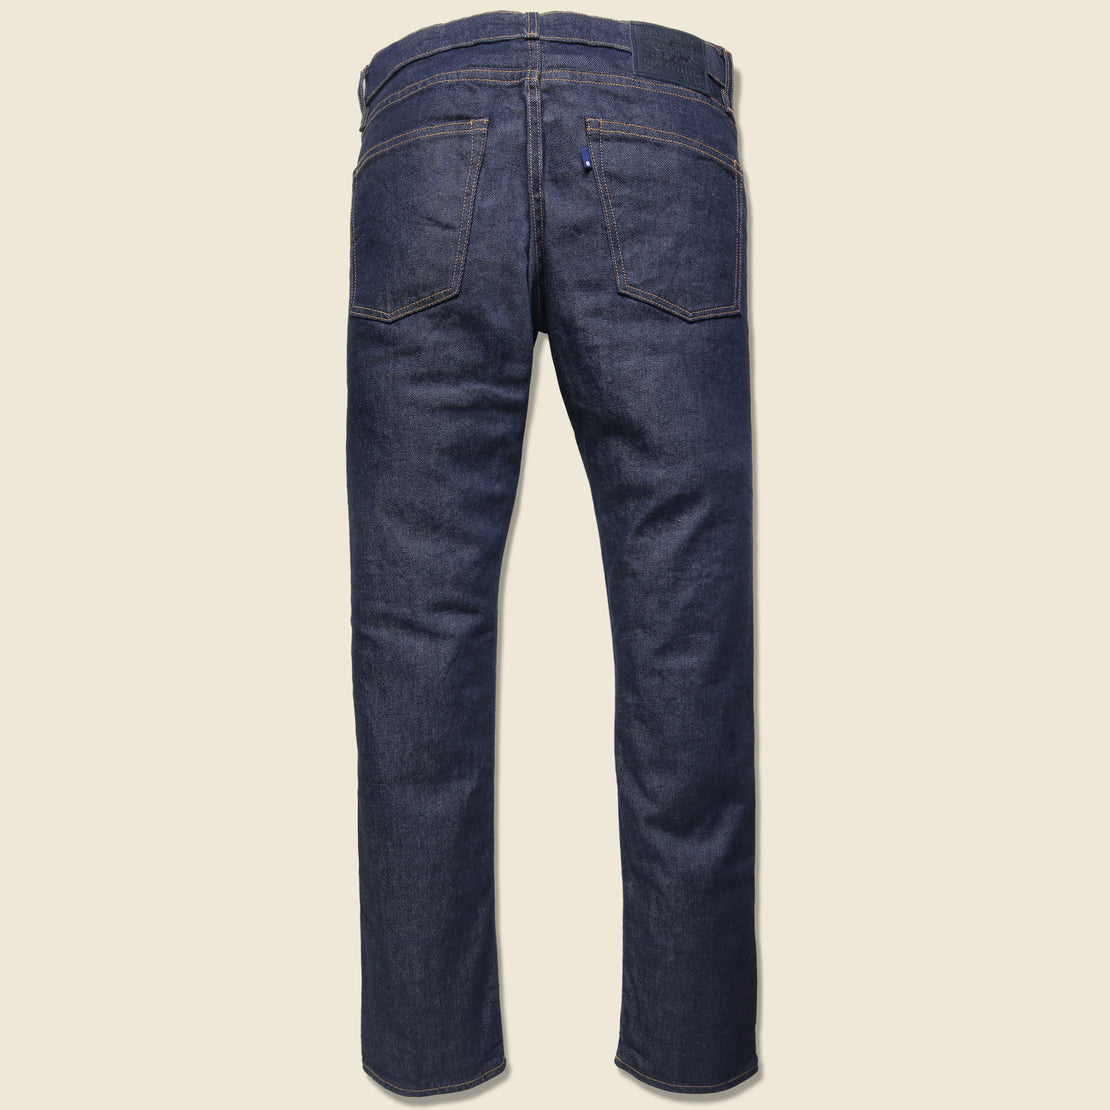 511 Slim Fit Jean - Resin Rinse